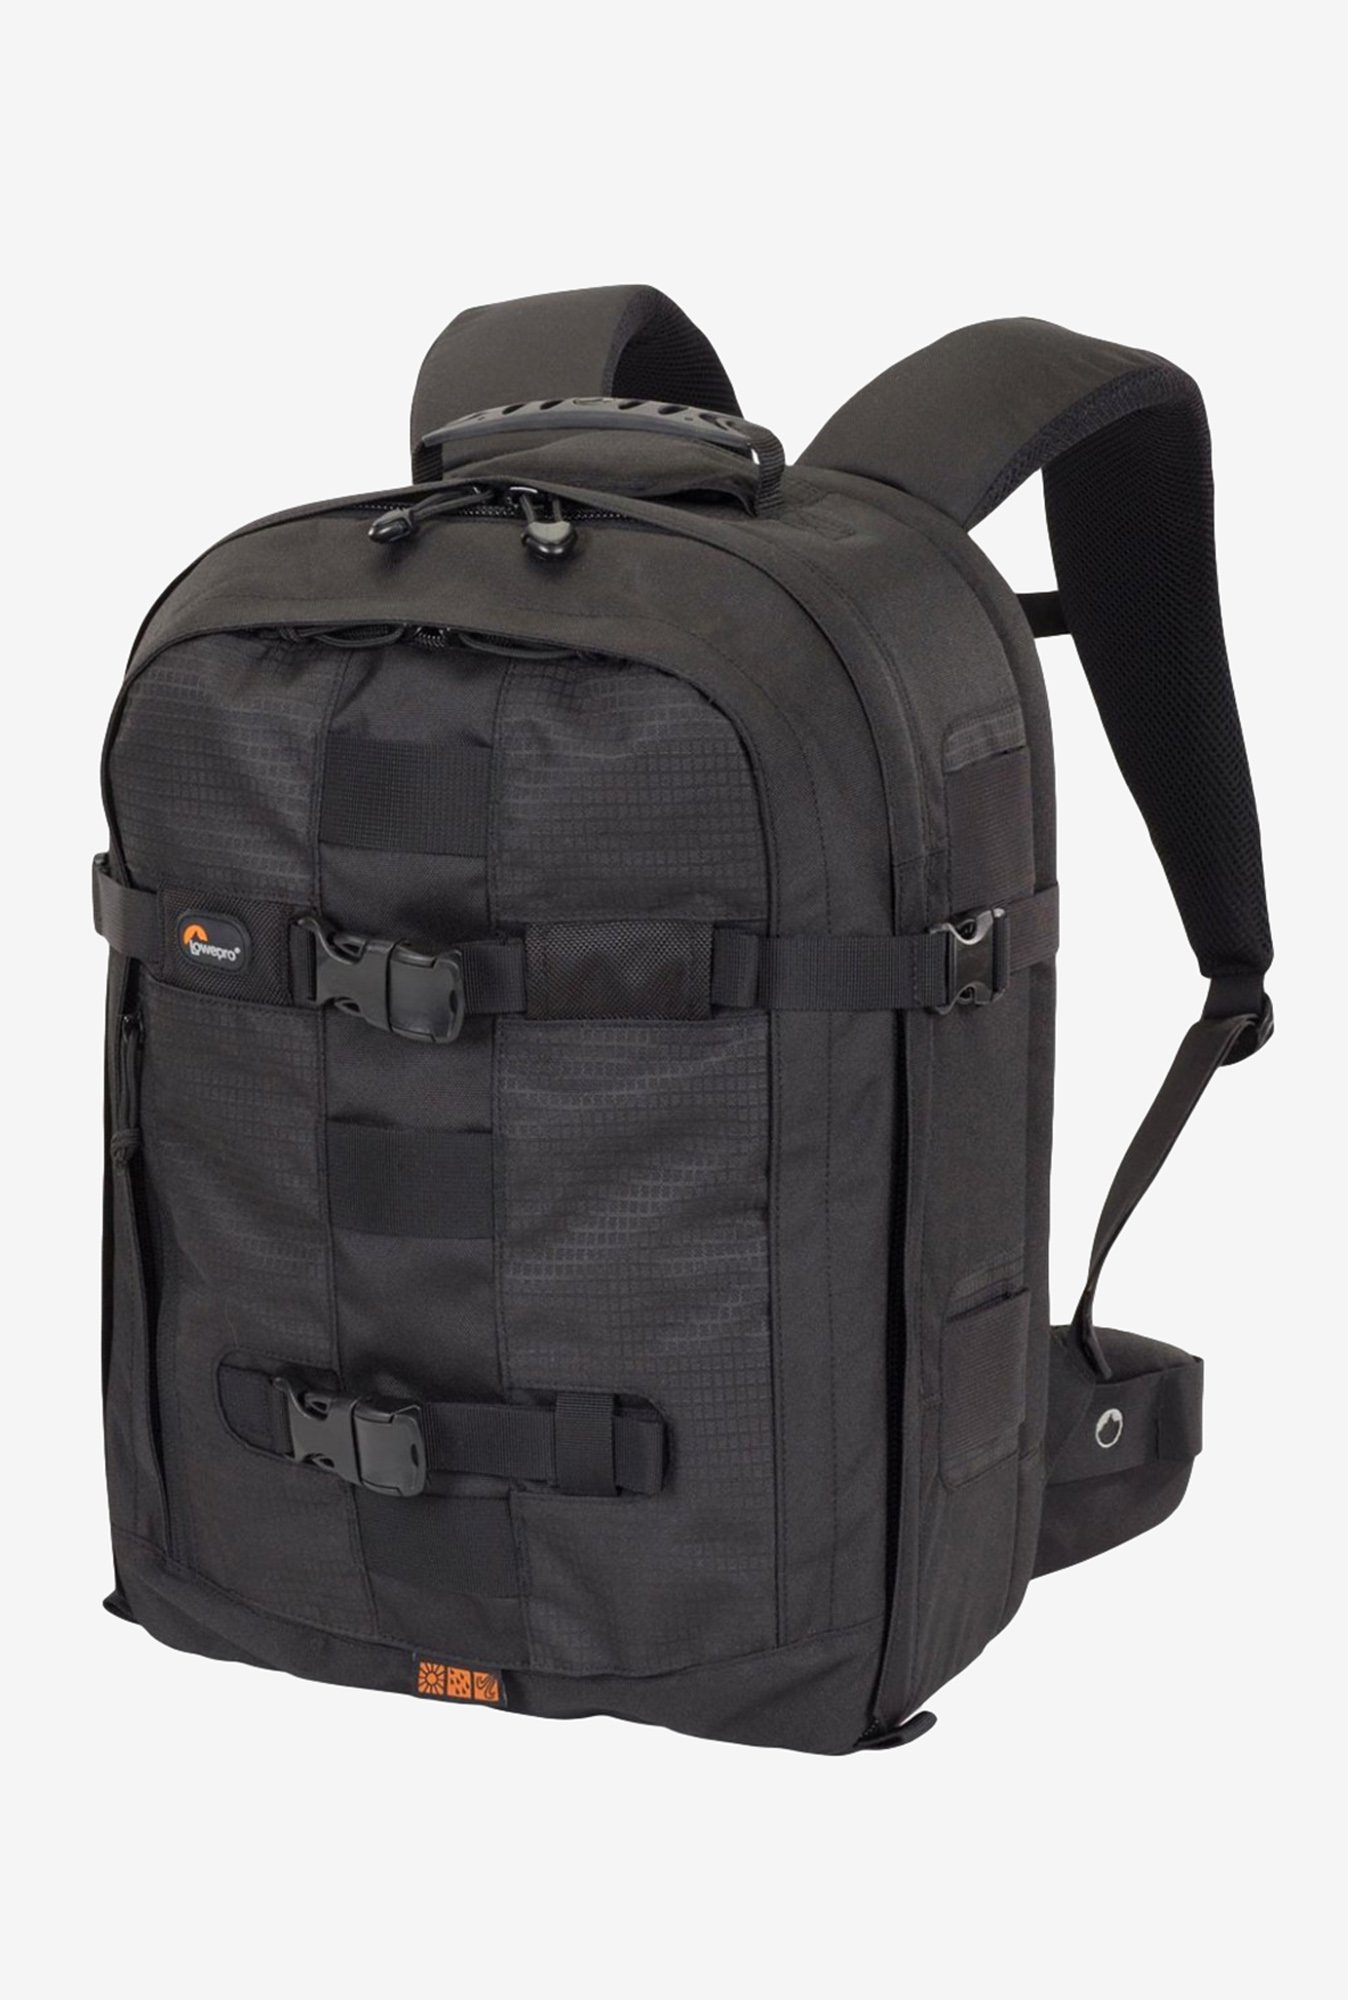 Lowepro Pro Runner 350AW Backpack Black